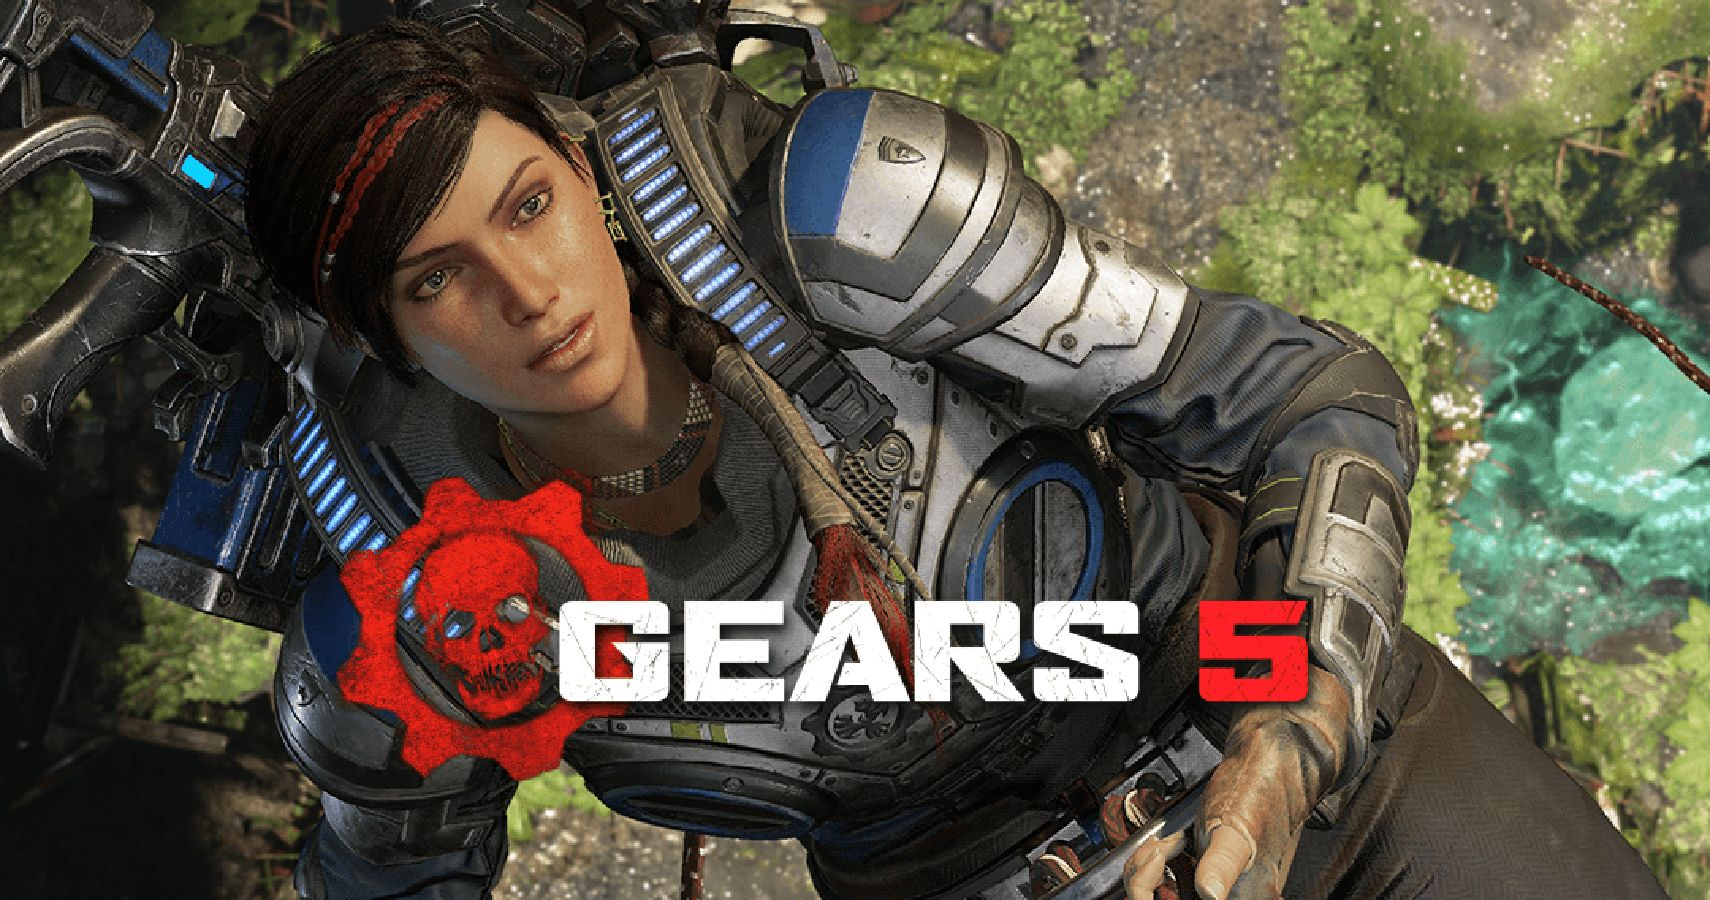 10 Gears Of War Memes That Are Too Funny For Words Thegamer Другие видео об этой игре. gears of war memes that are too funny